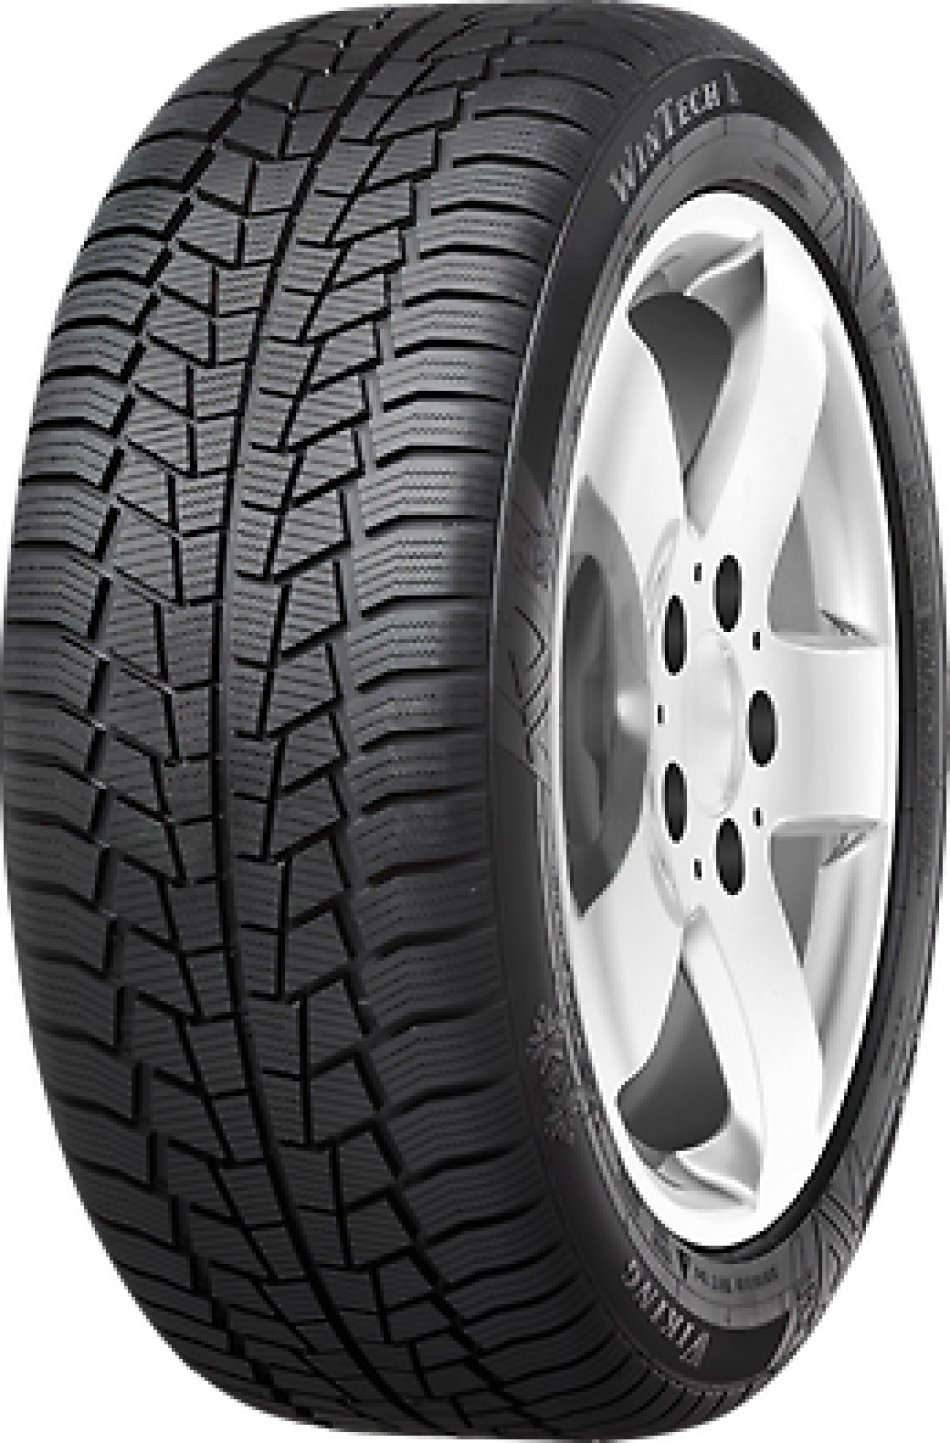 225/65R17 106H Viking WinTech